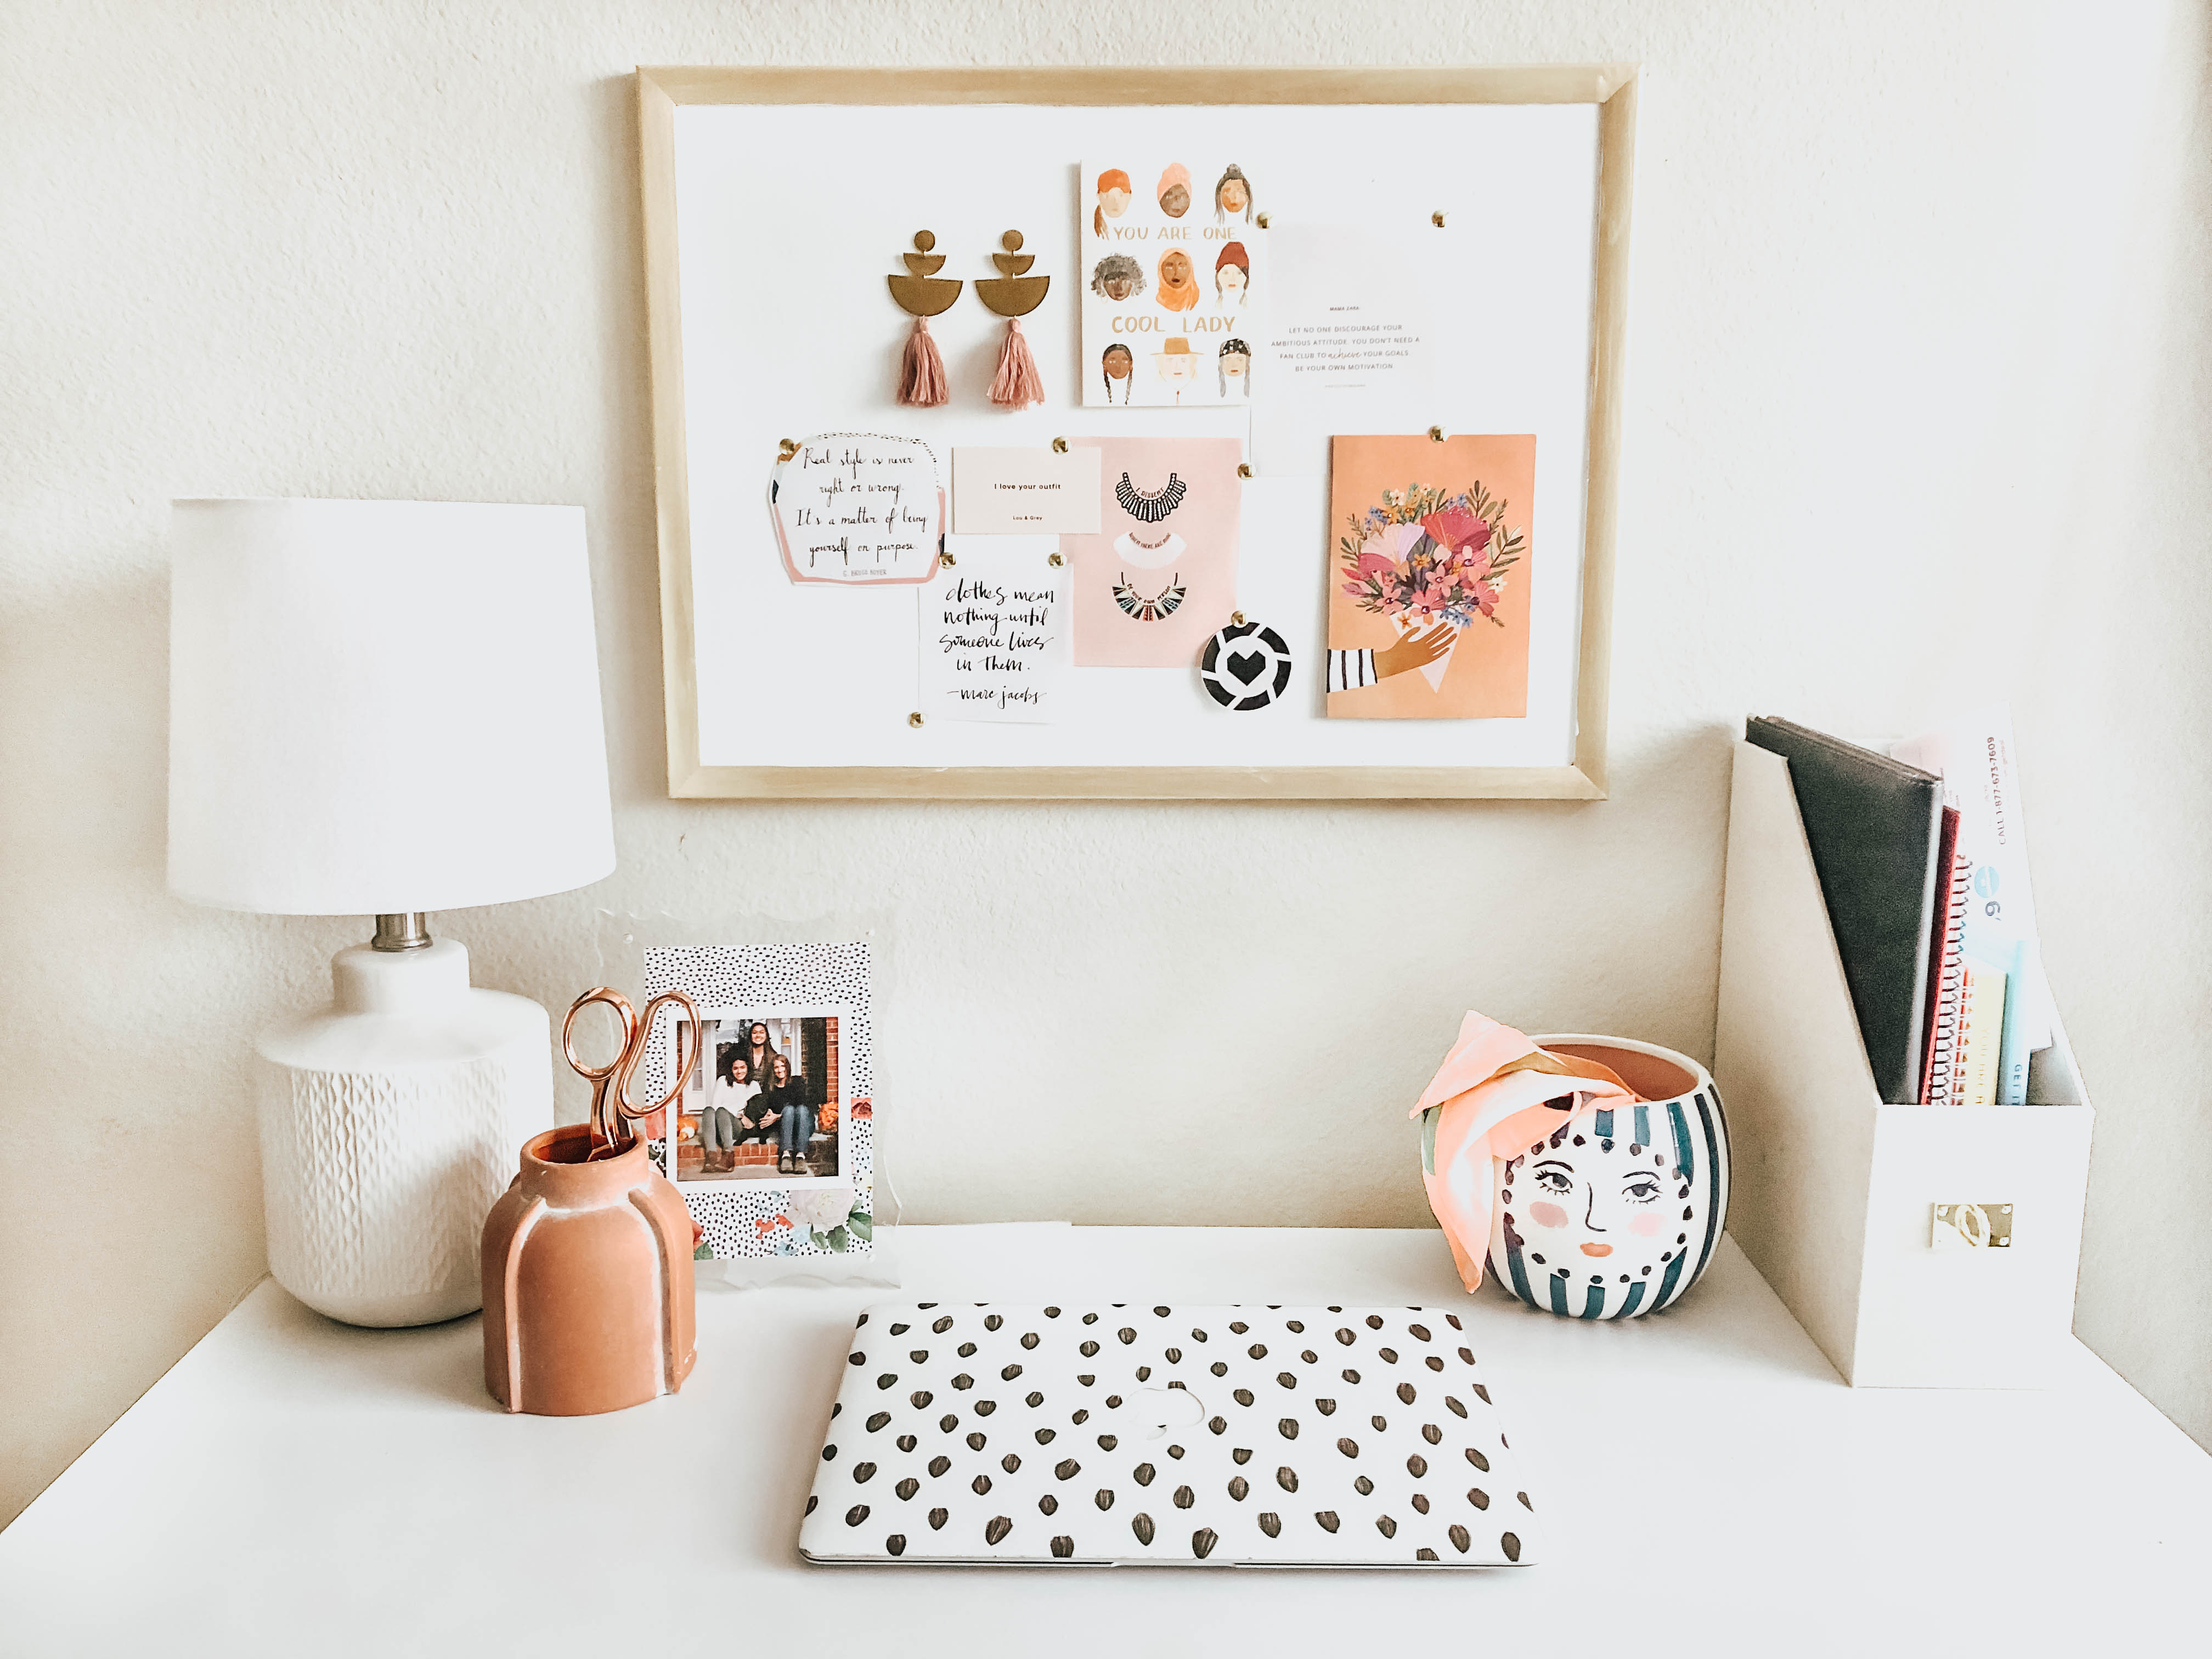 White Desk with DIY Gold Framed Cork Board Above It